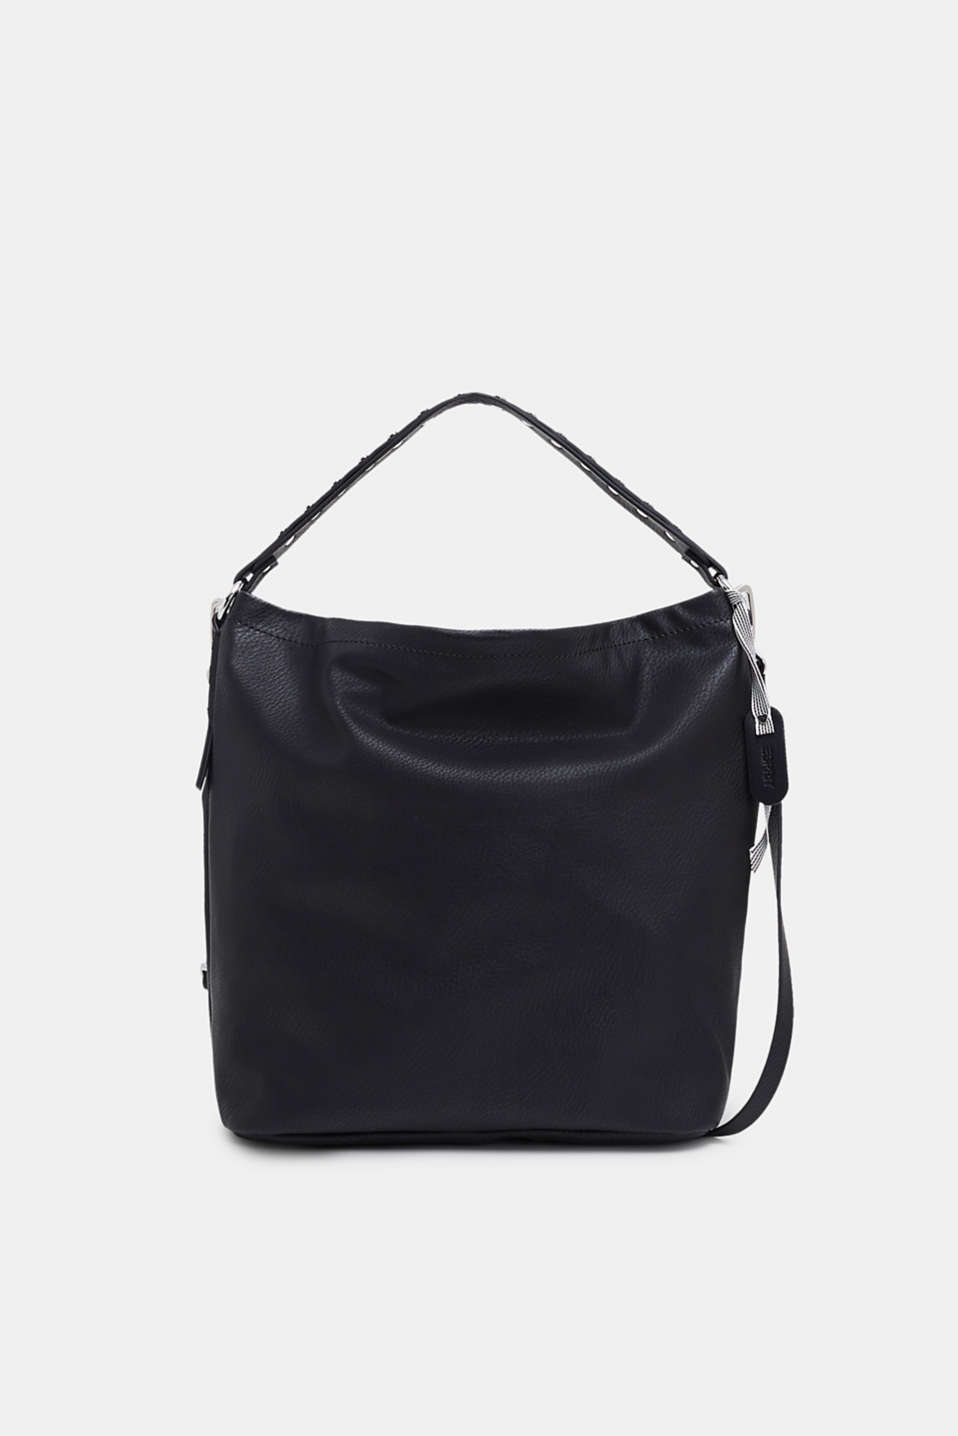 Esprit - Tote bag in similpelle